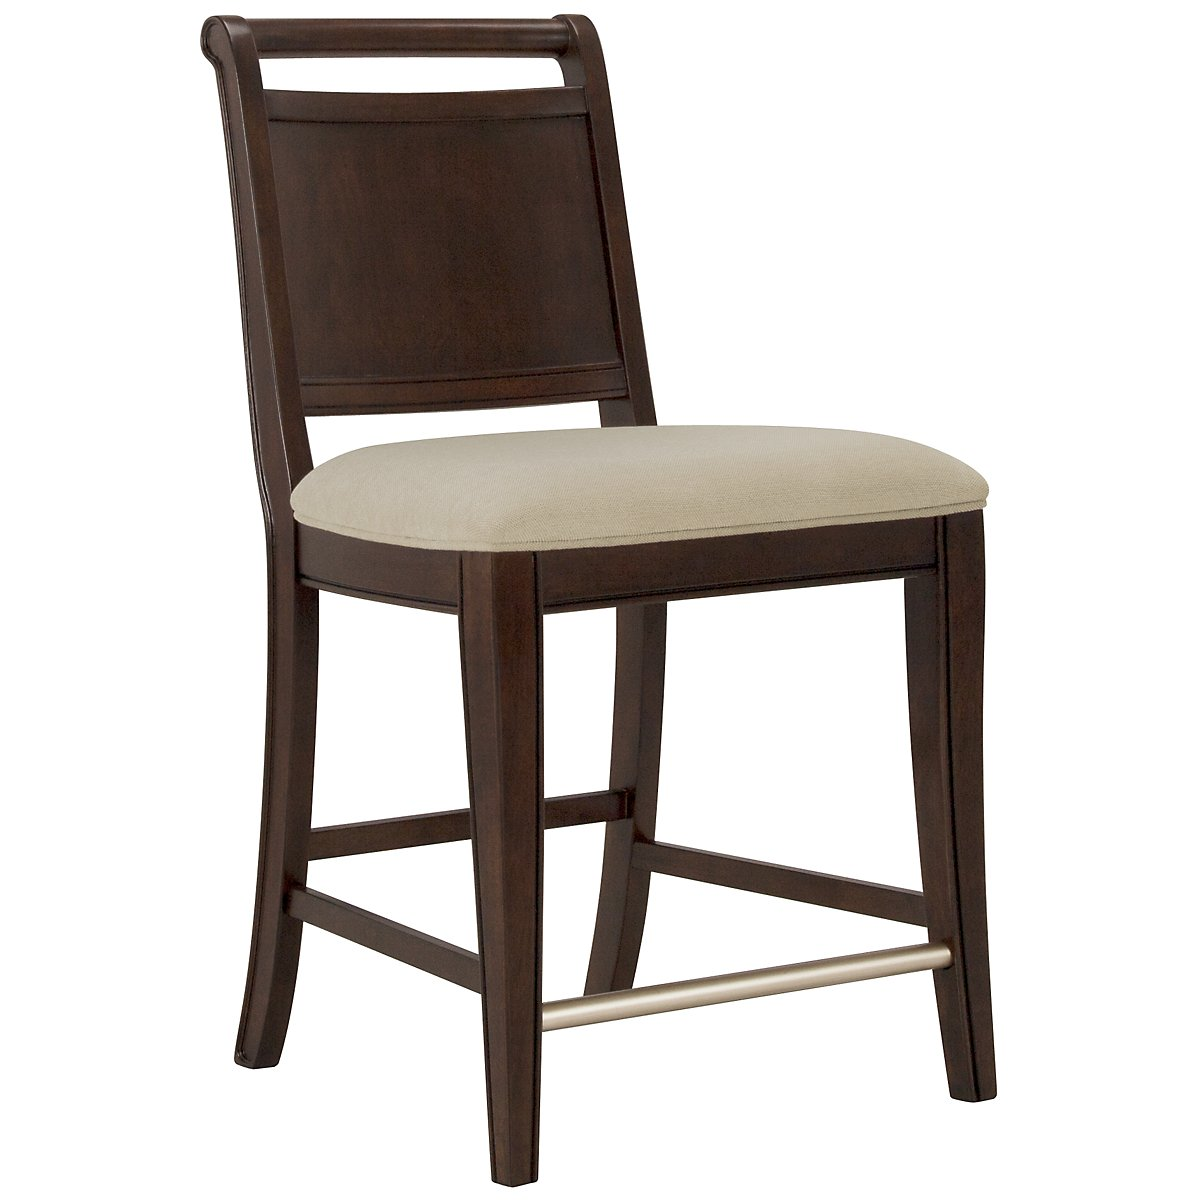 "Canyon Dark Tone 24"" Wood Barstool"